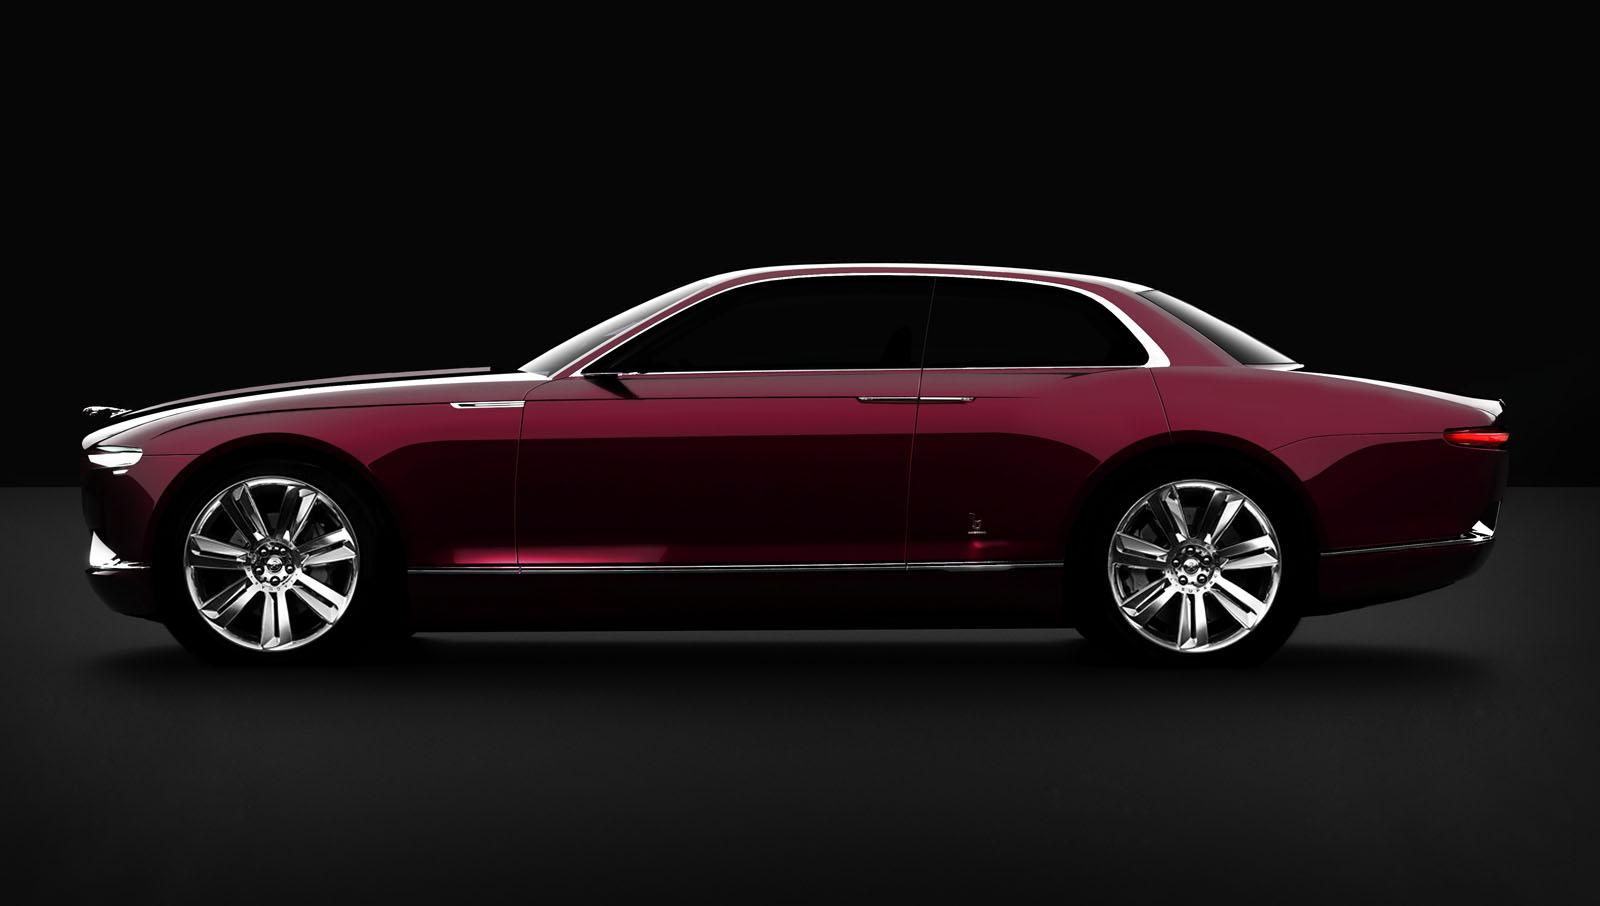 latest jaguar cars 2012 launched in the market | Global blog for the